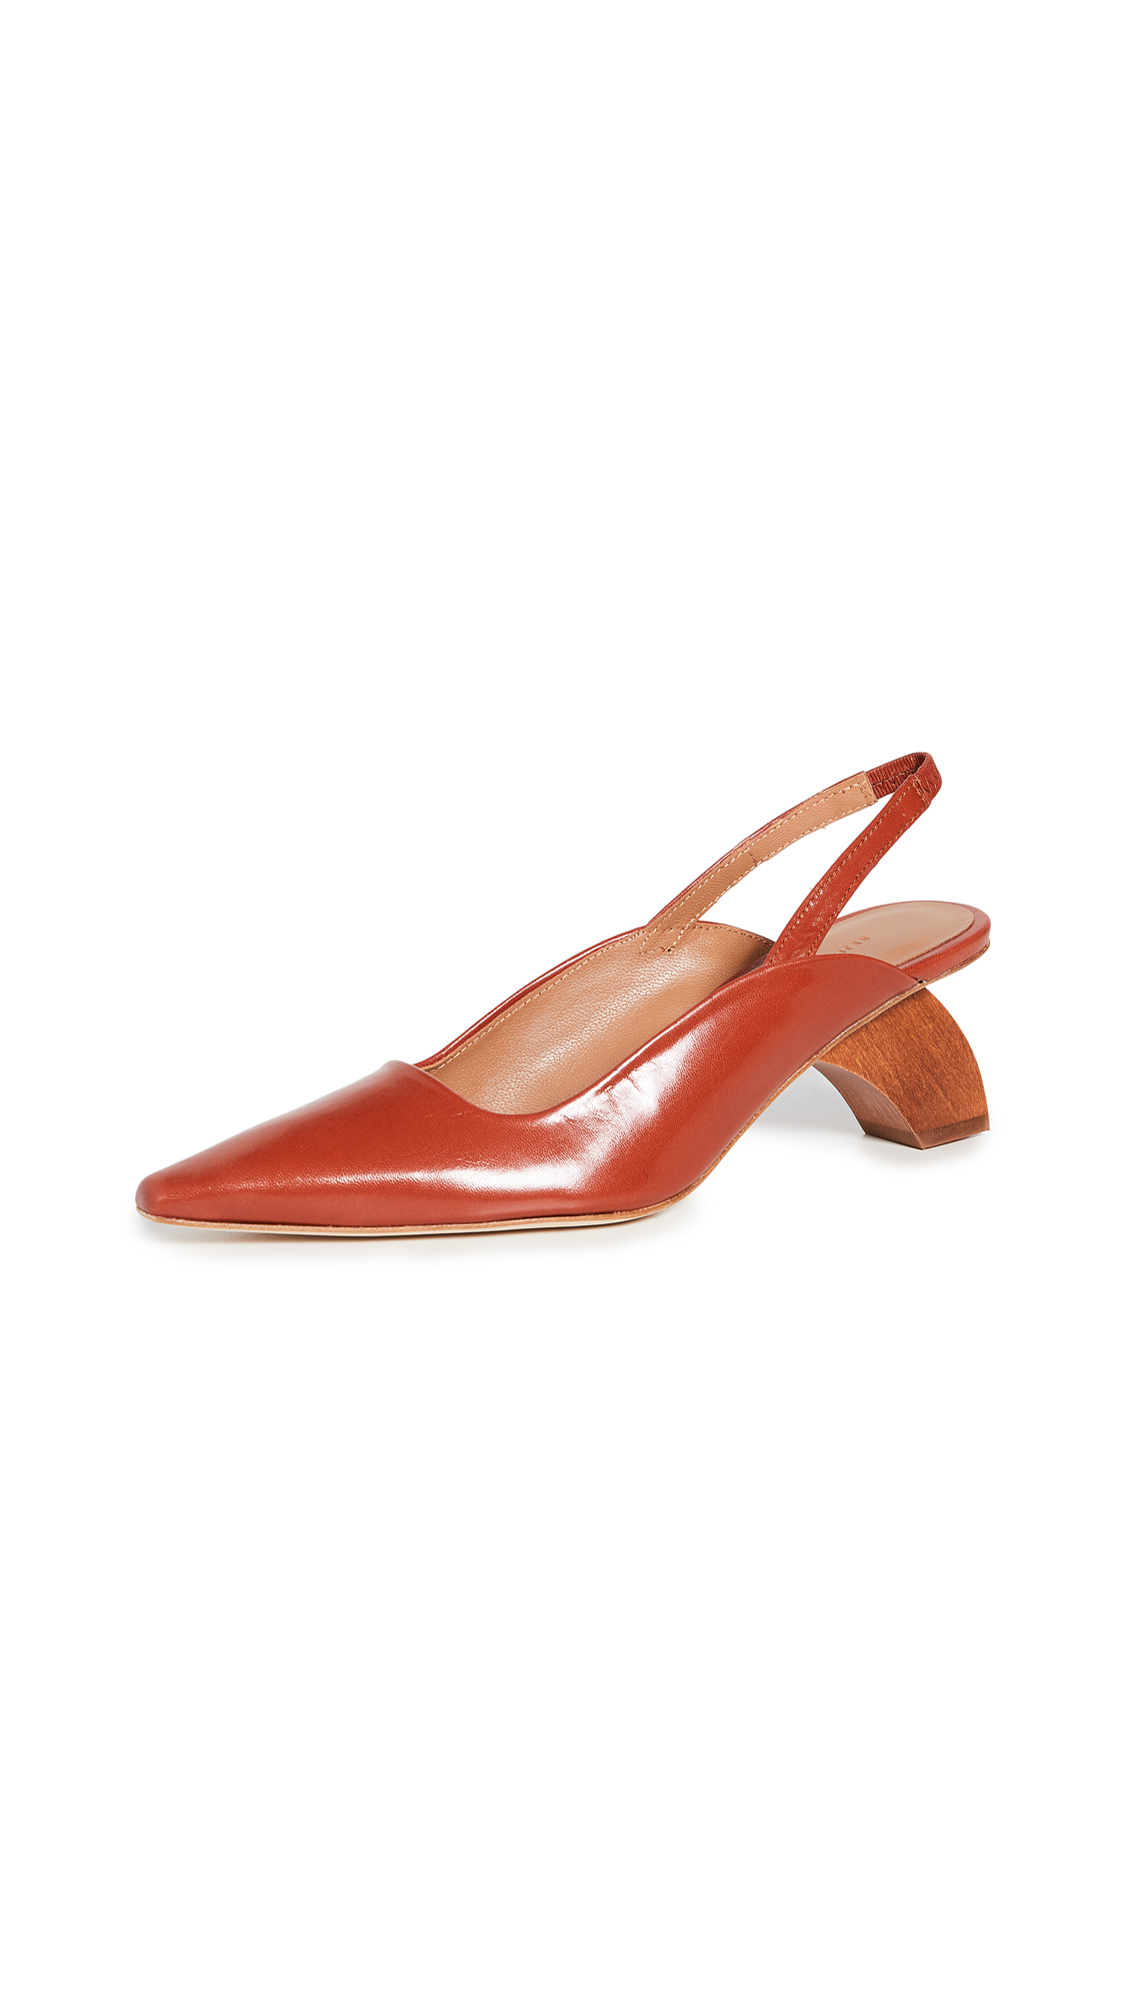 Rejina Pyo 60mm Dylan Slingbacks - 50% Off Sale